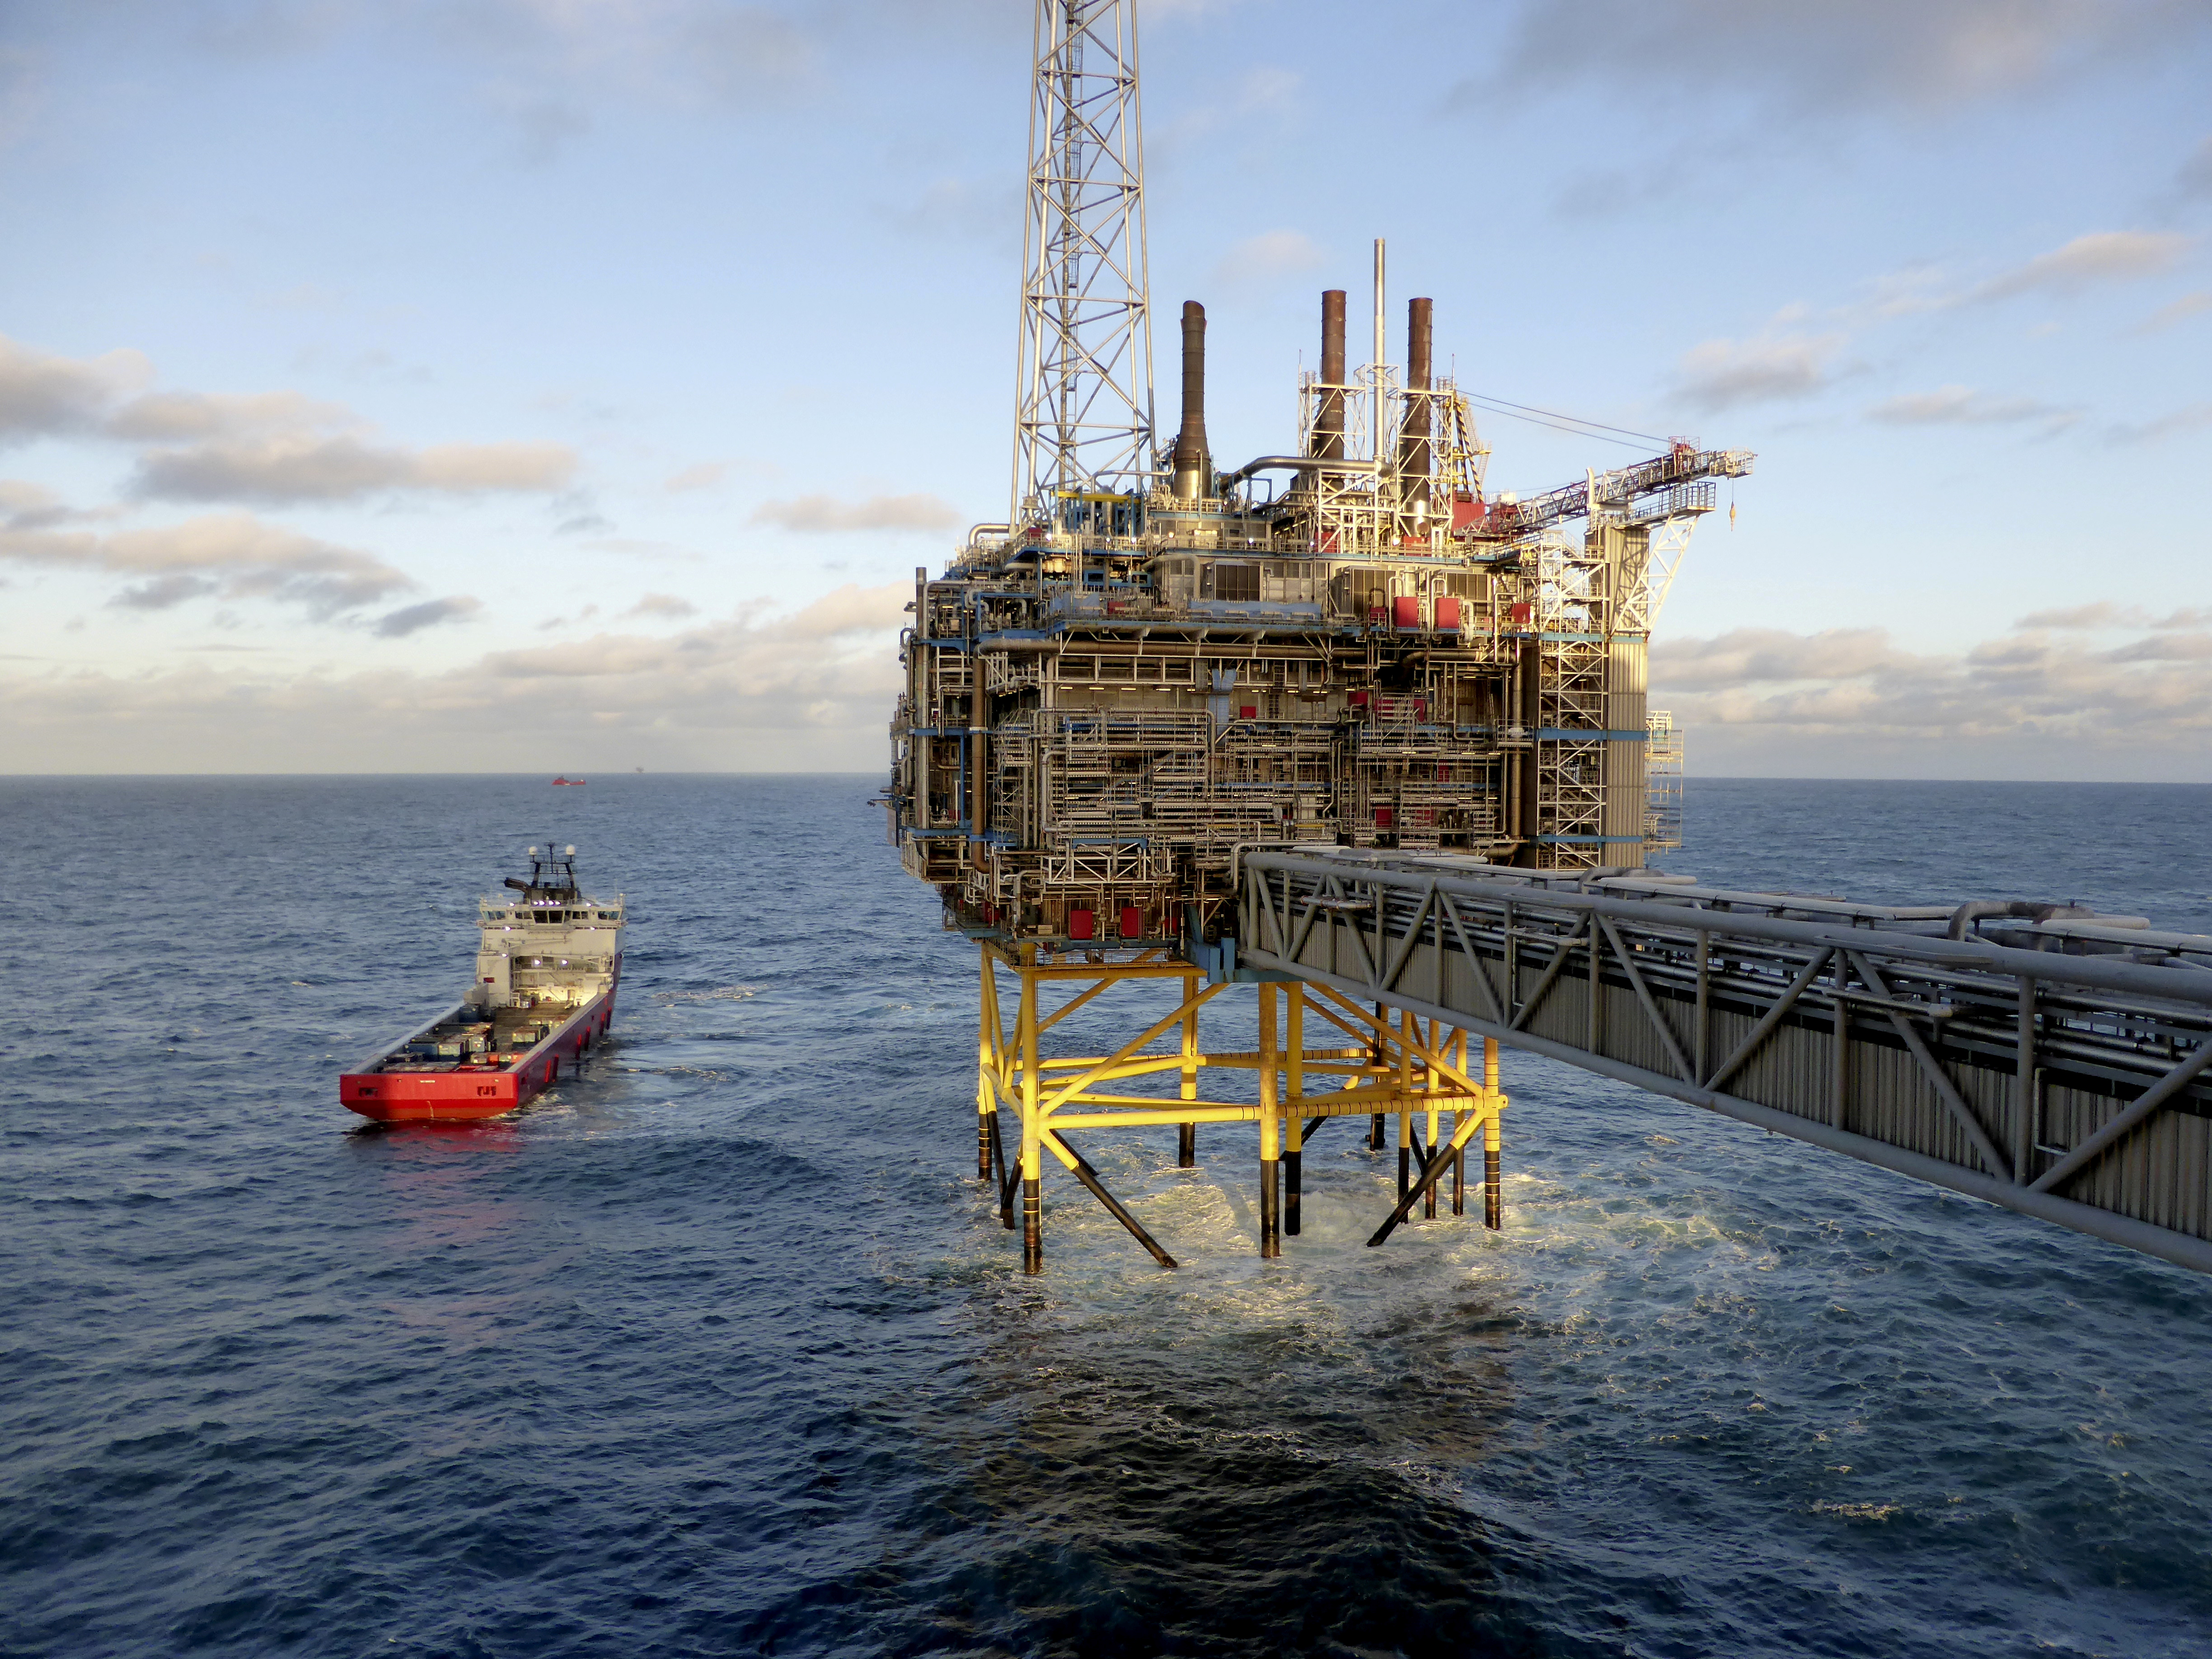 World's biggest wealth fund is dumping oil and gas stocks